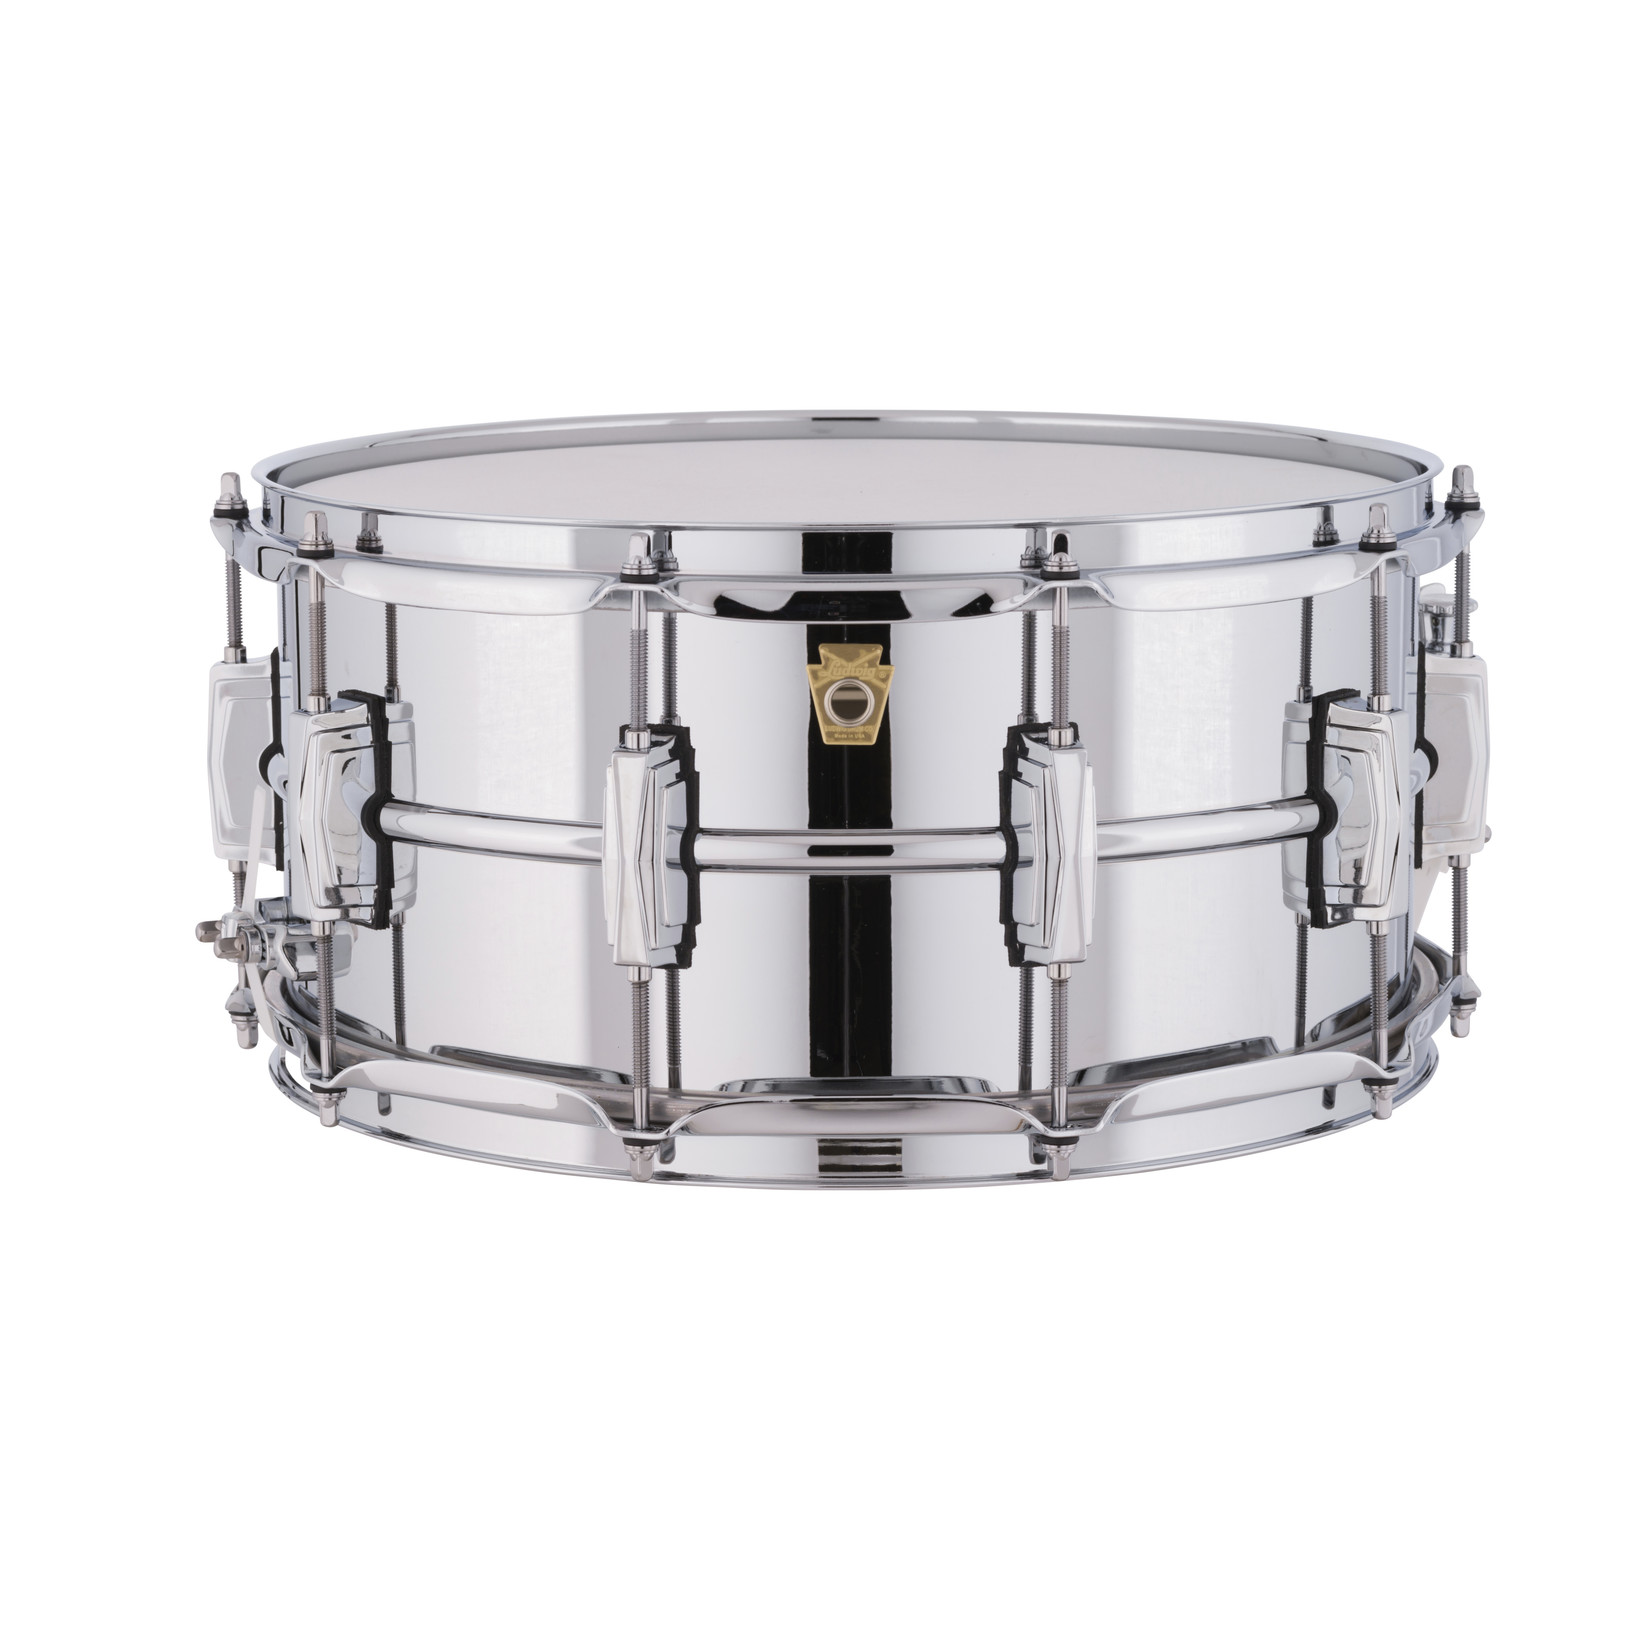 Ludwig Ludwig 6.5X 14 Supraphonic Chrome over Brass Snare Drum / Imperial Lugs / Chrome Hardware